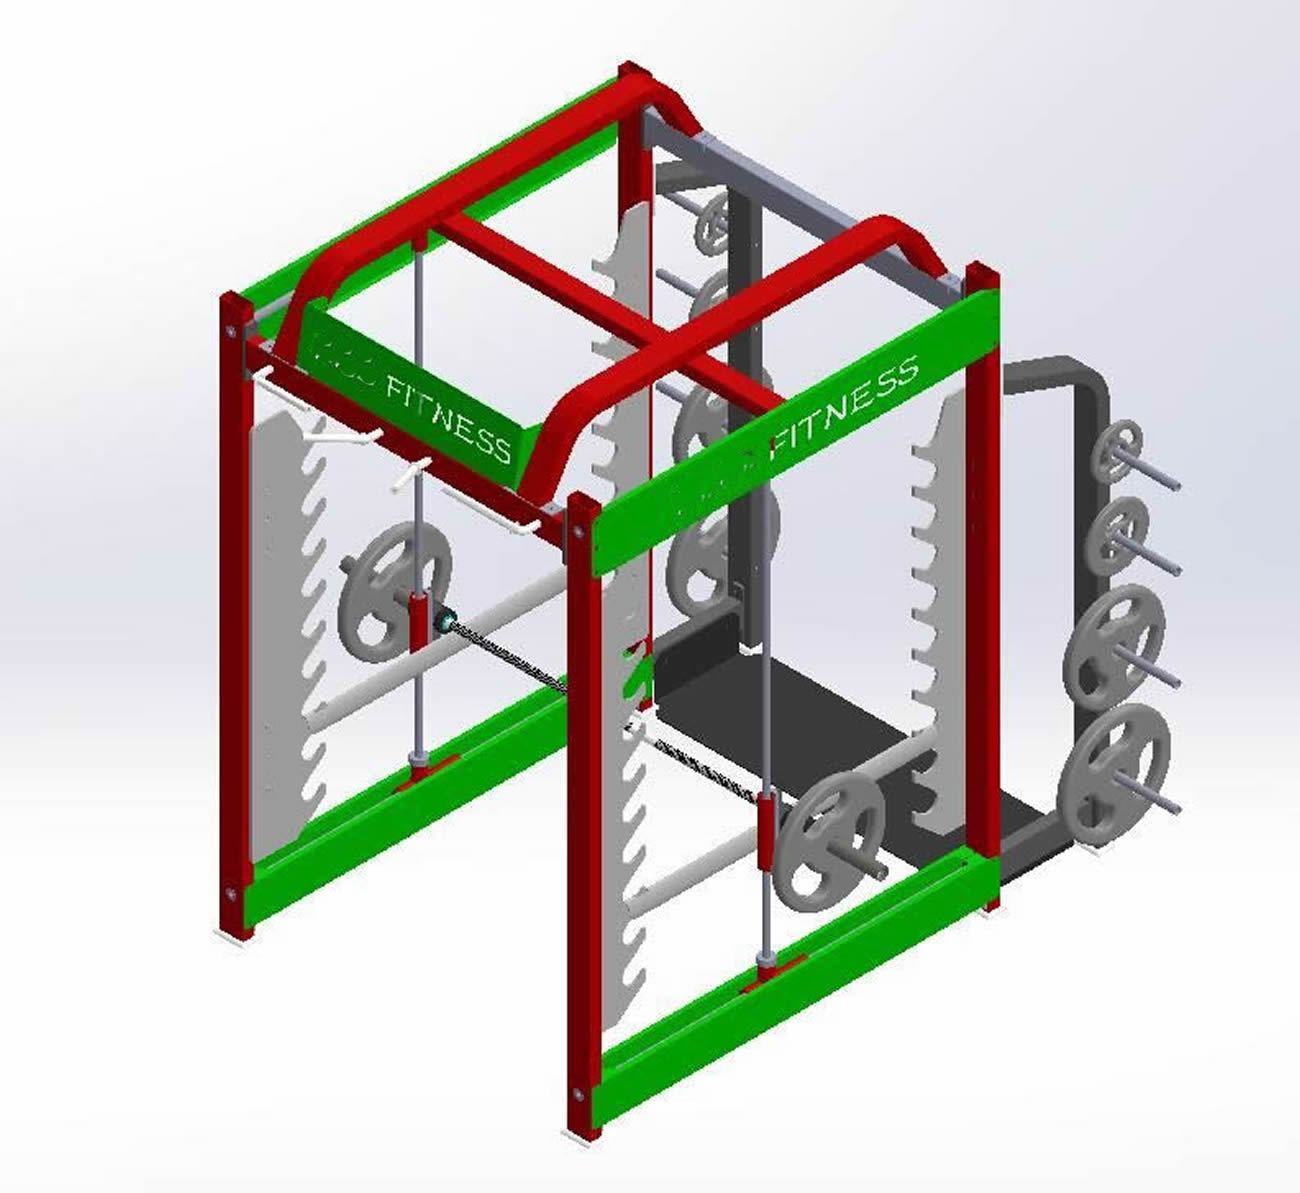 3D Smith Machine TXD 030